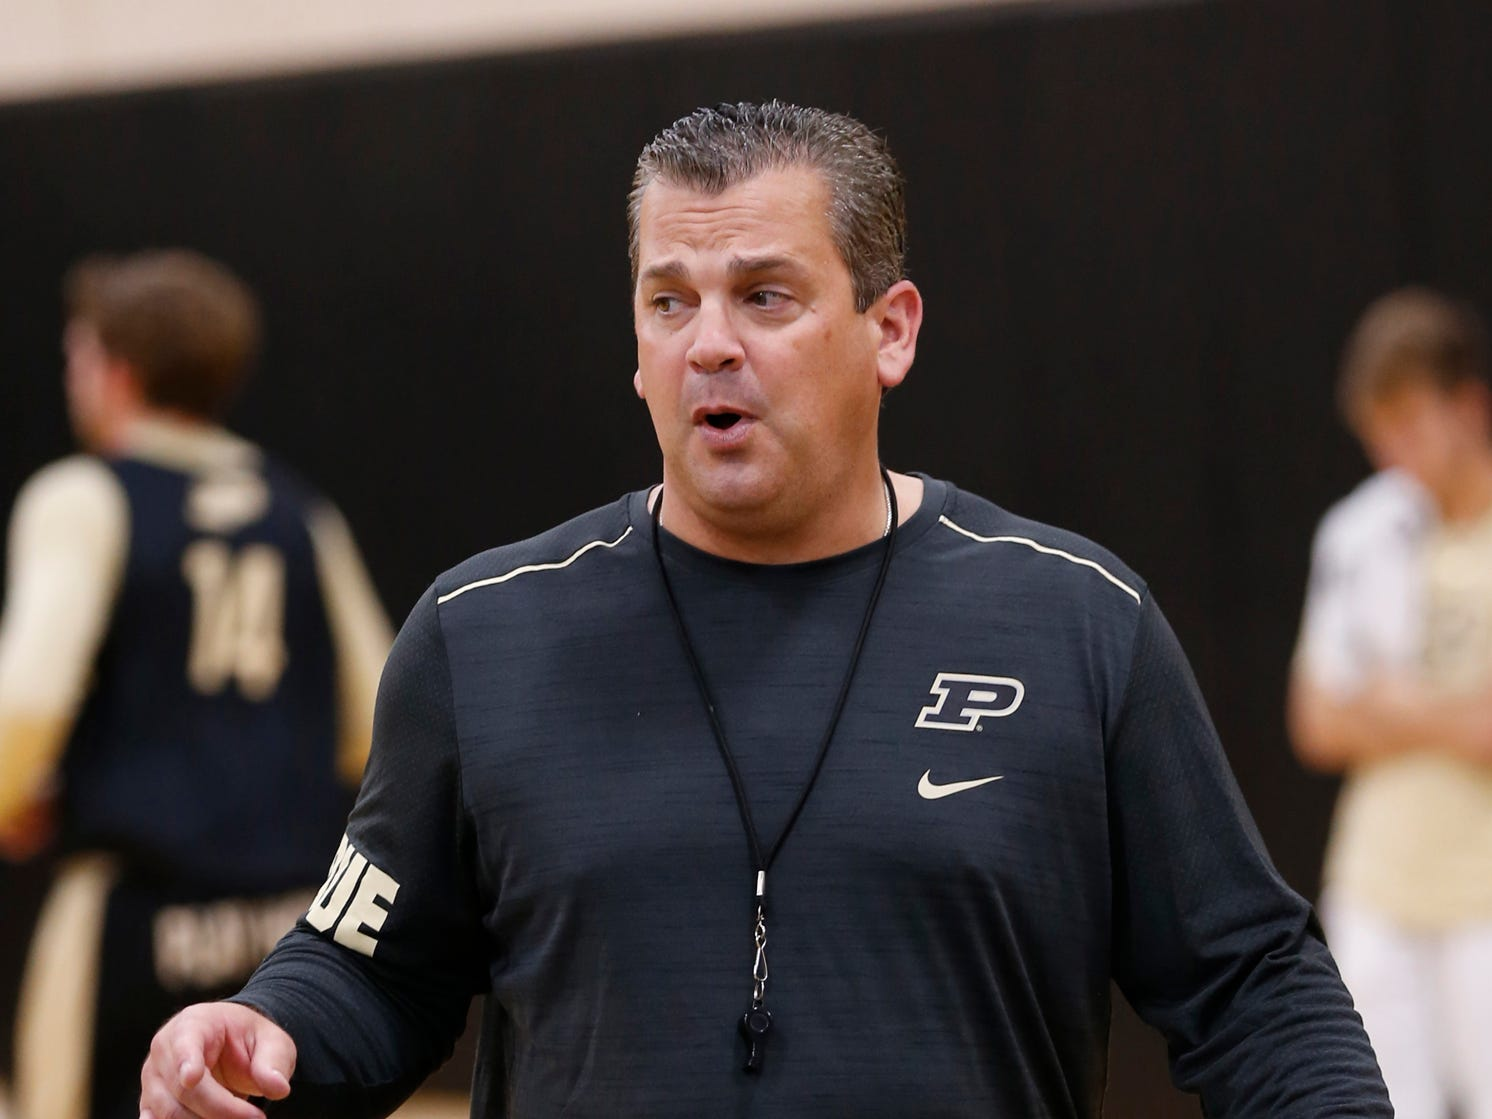 Assistant coach Greg Gary during the first official practice of the season for Purdue men's basketball Tuesday, September 25, 2018, at Cardinal Court in Mackey Arena.